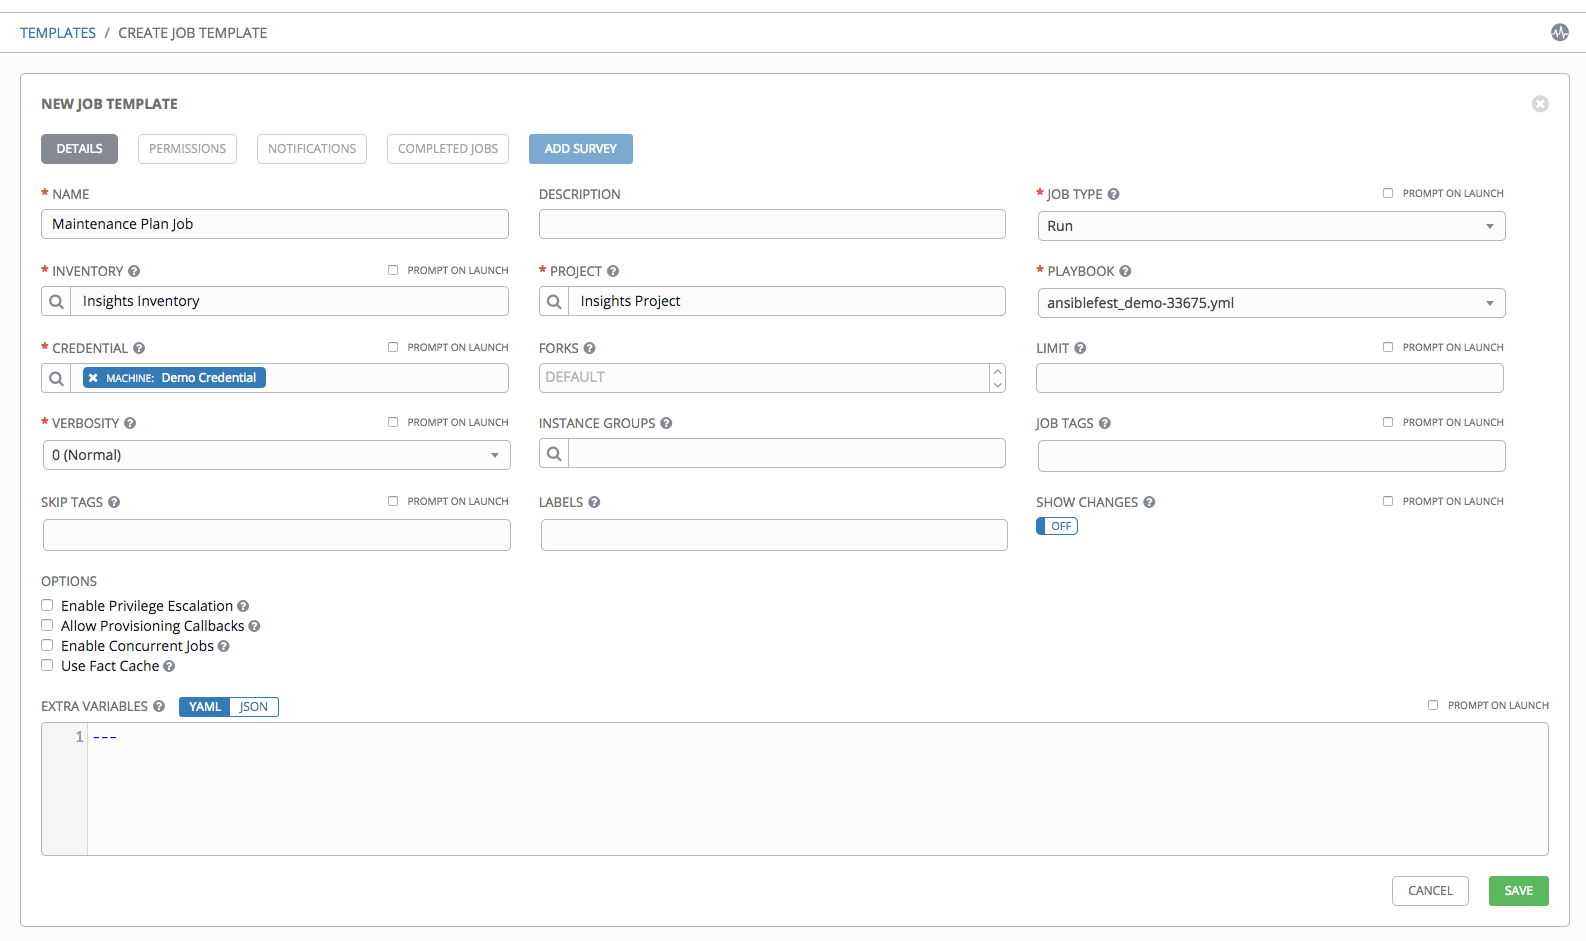 ansible template example - 19 setting up an insights project ansible tower user